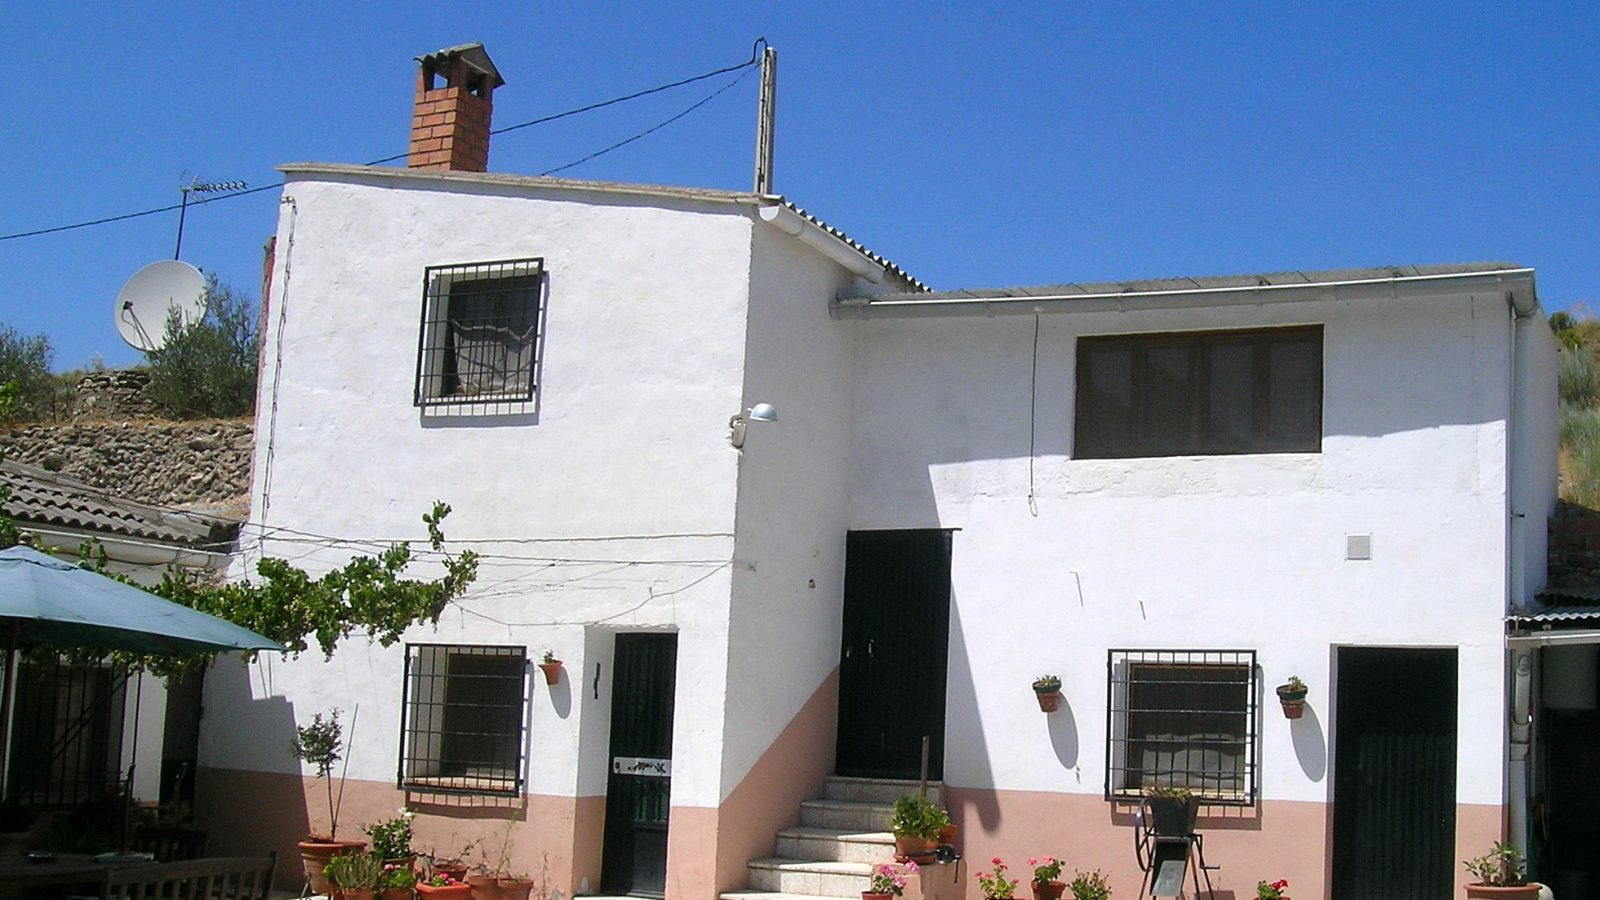 Casa | Casa Tranquila Seron | Almeria | Spain | Apartments to Rent